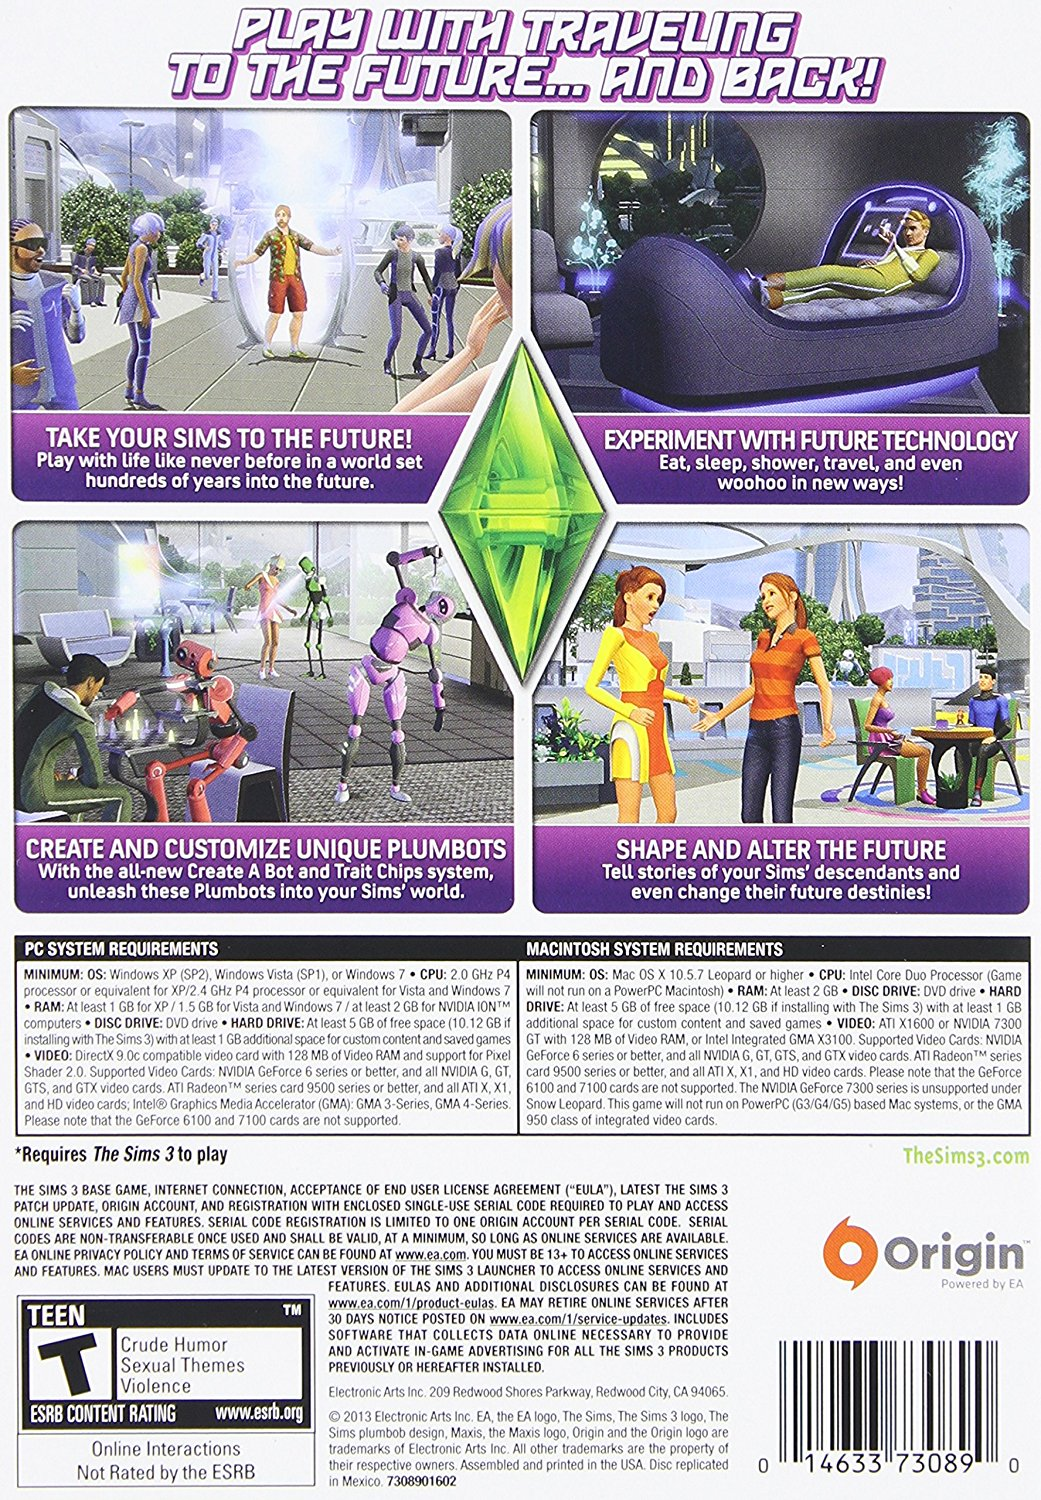 Ea The Sims 3 Into The Future - Simulation Game Retail - Dvd-rom - Mac, Pc  (73089)